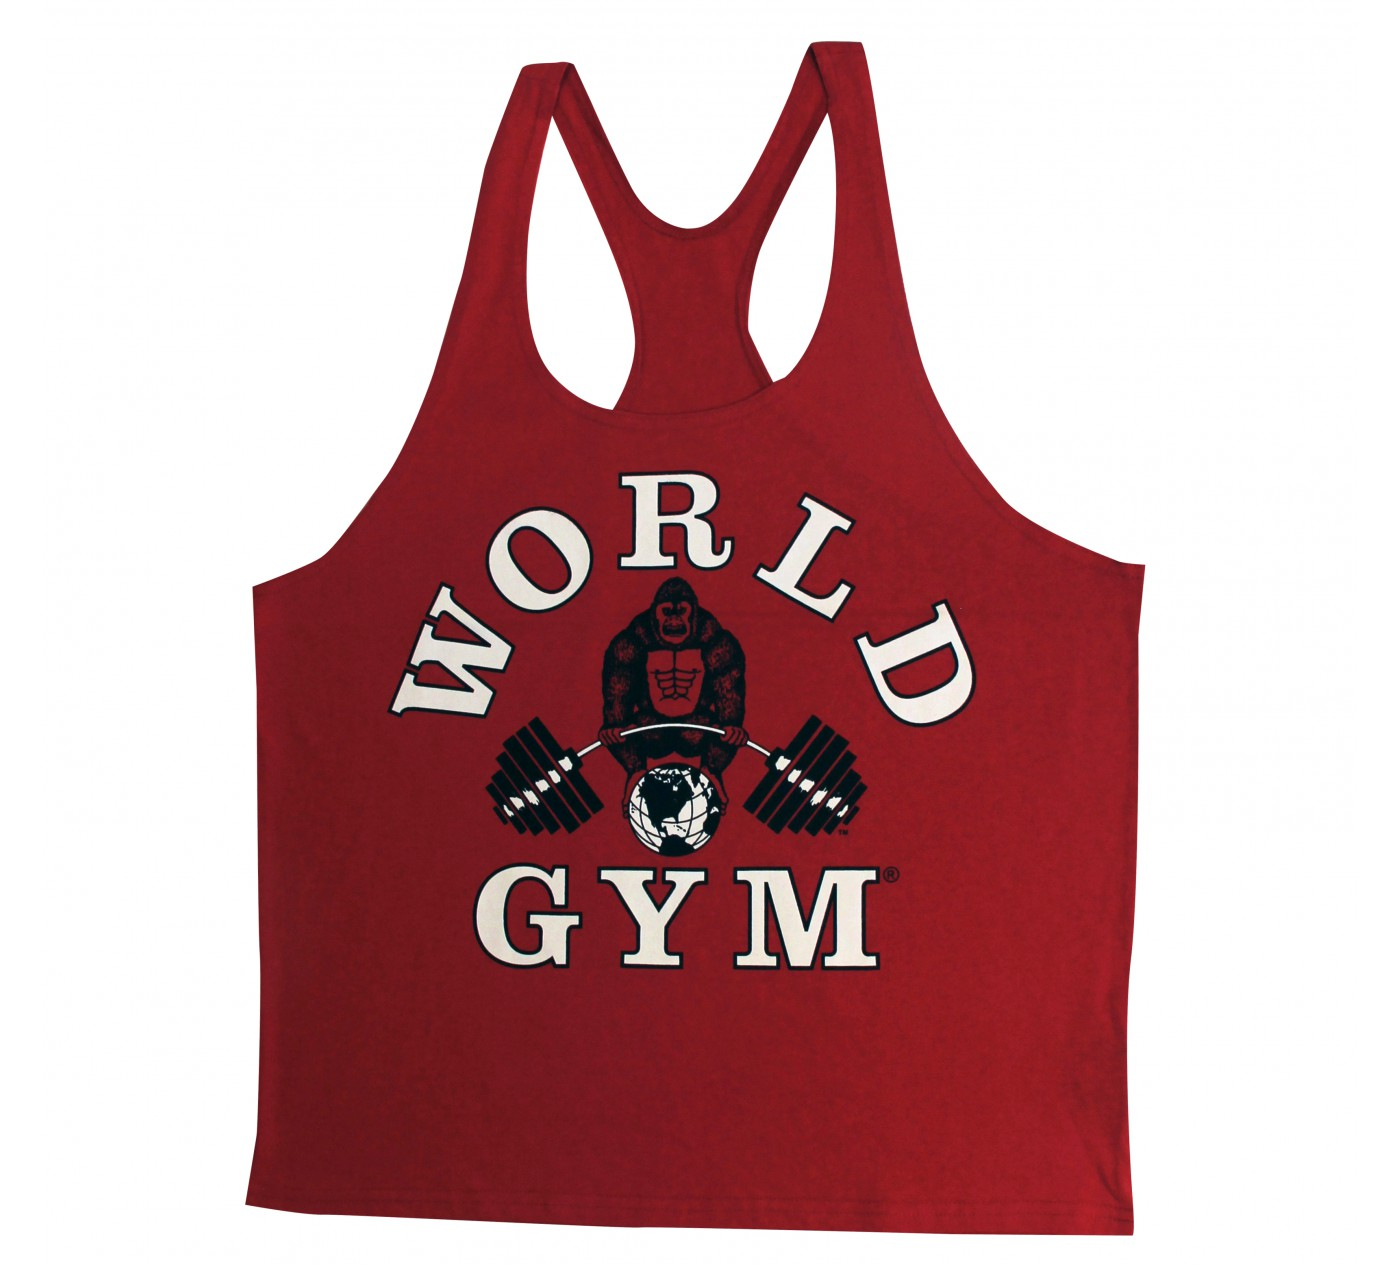 W300 World Gym réservoir de limon haut